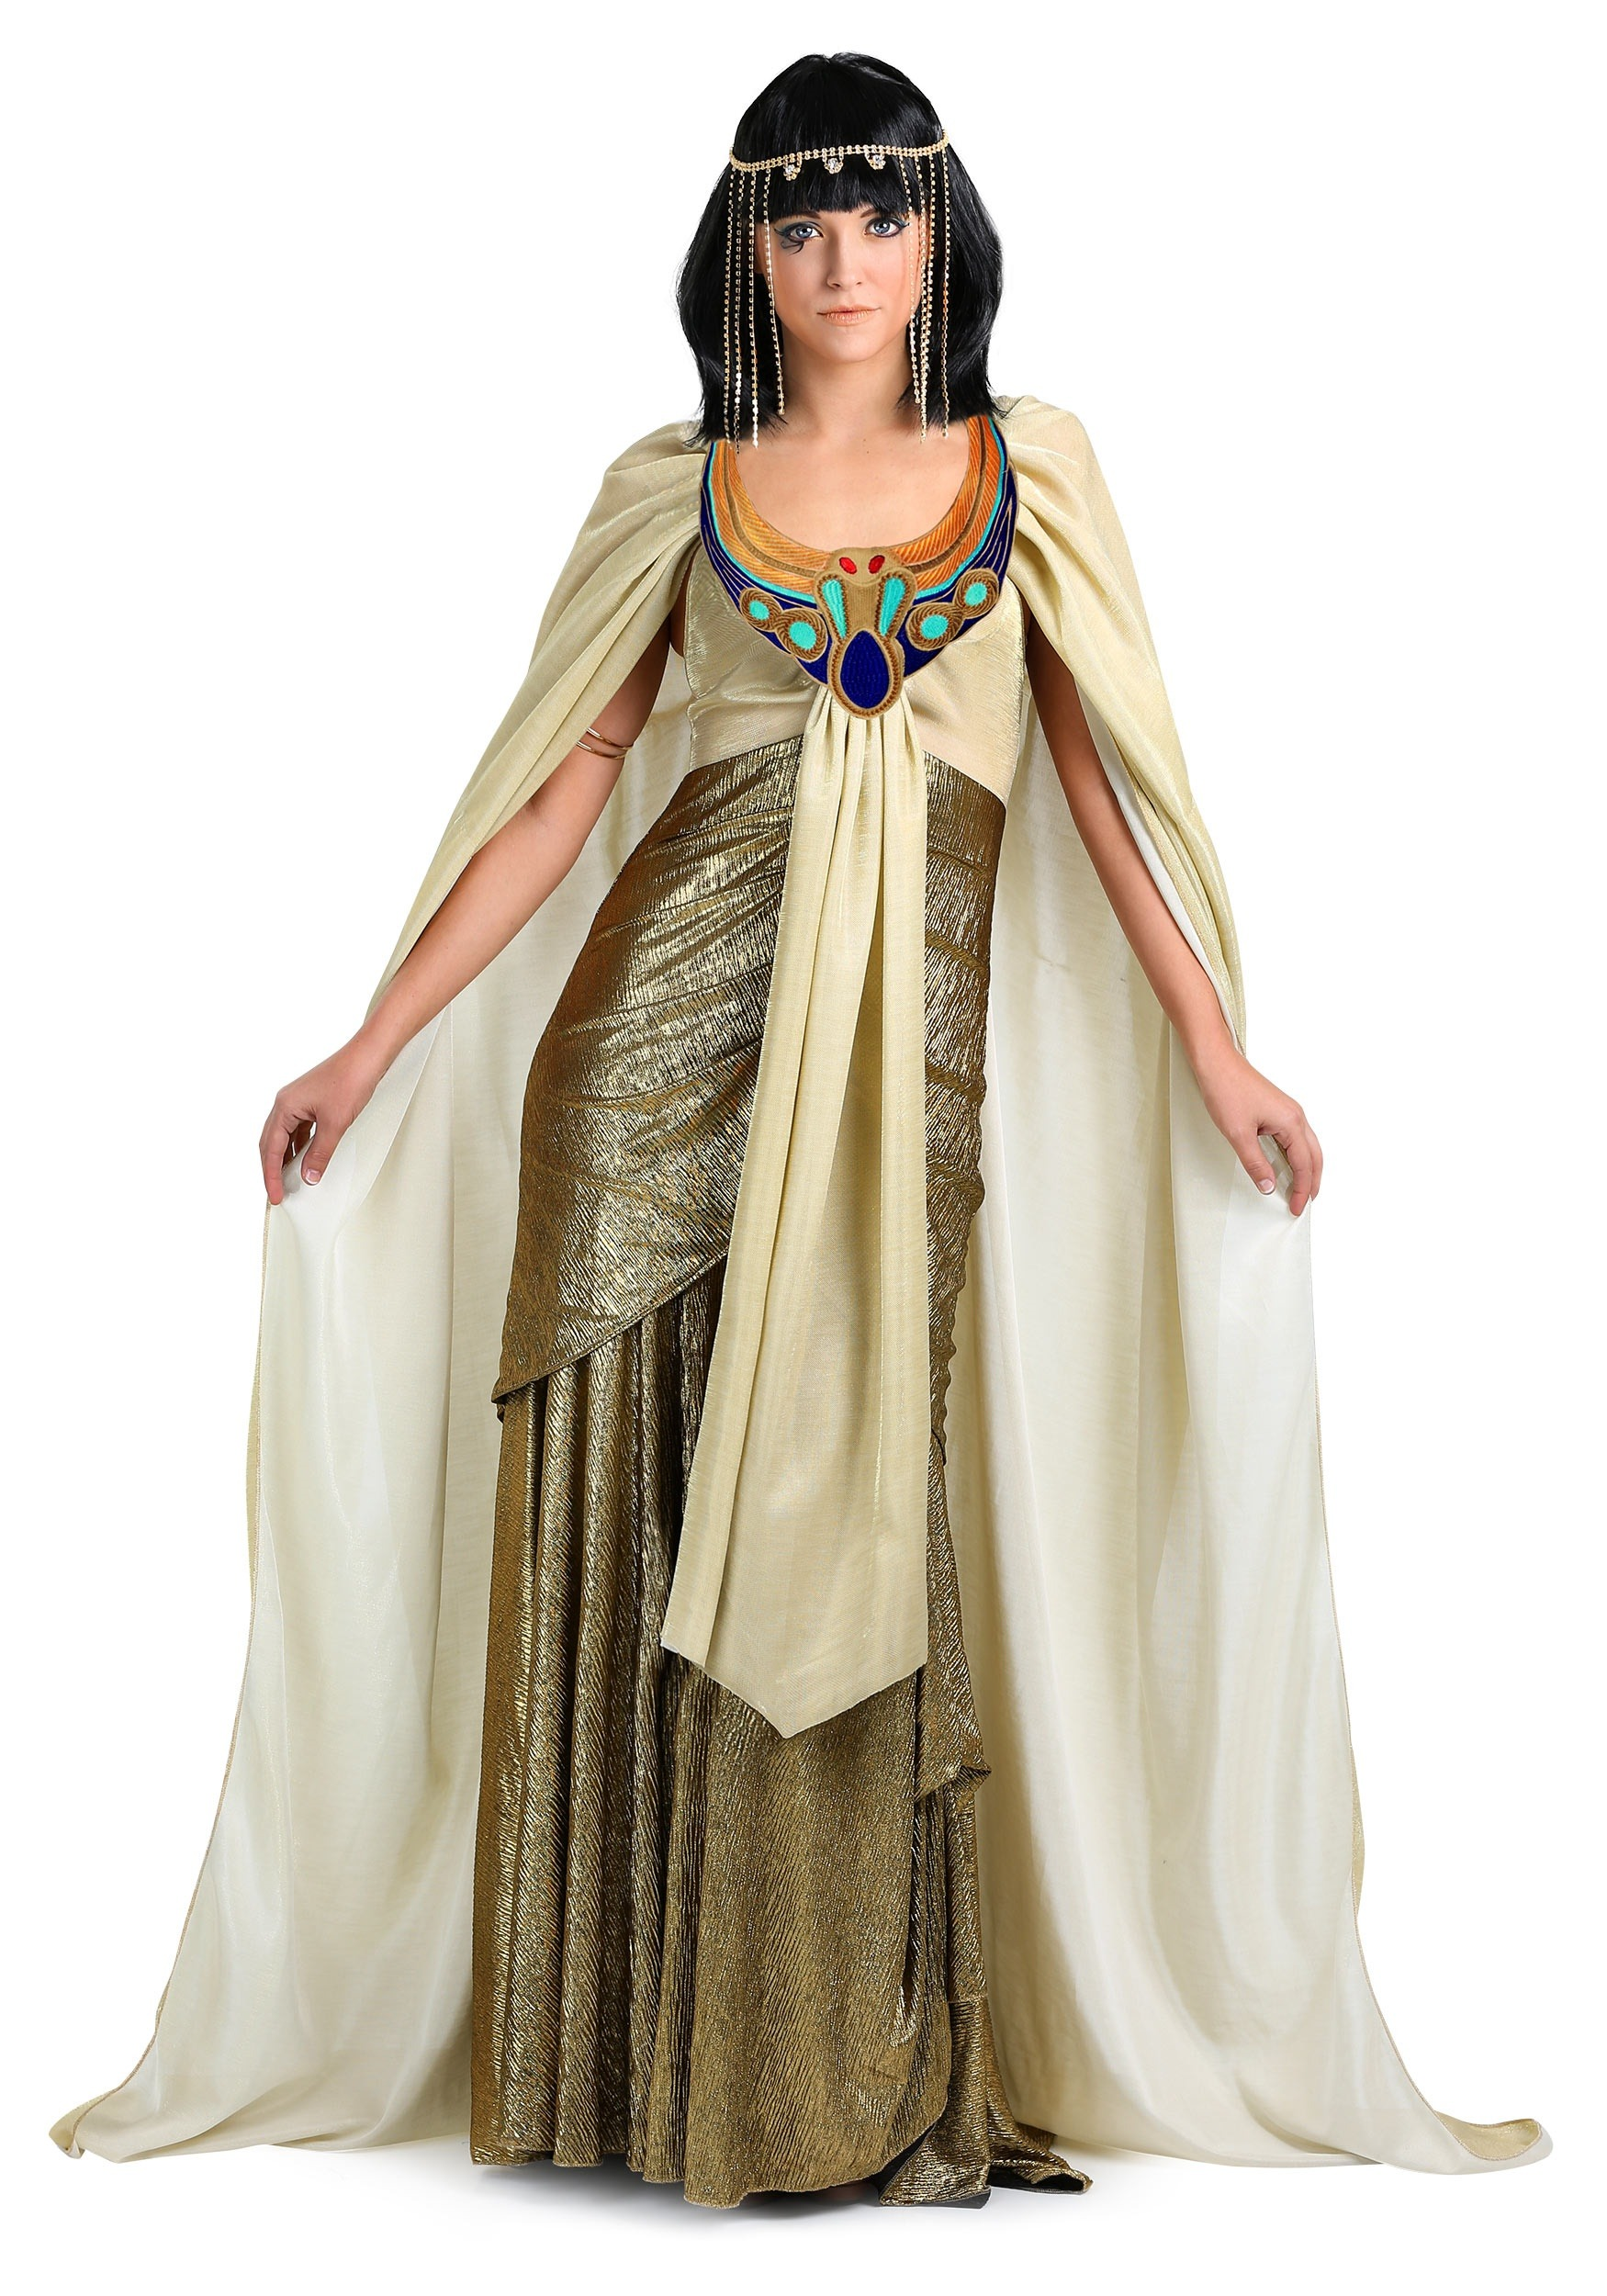 cleopatra black dress ladies dp amazon fancy gold halloween costume outfit up co uk cute party clothing